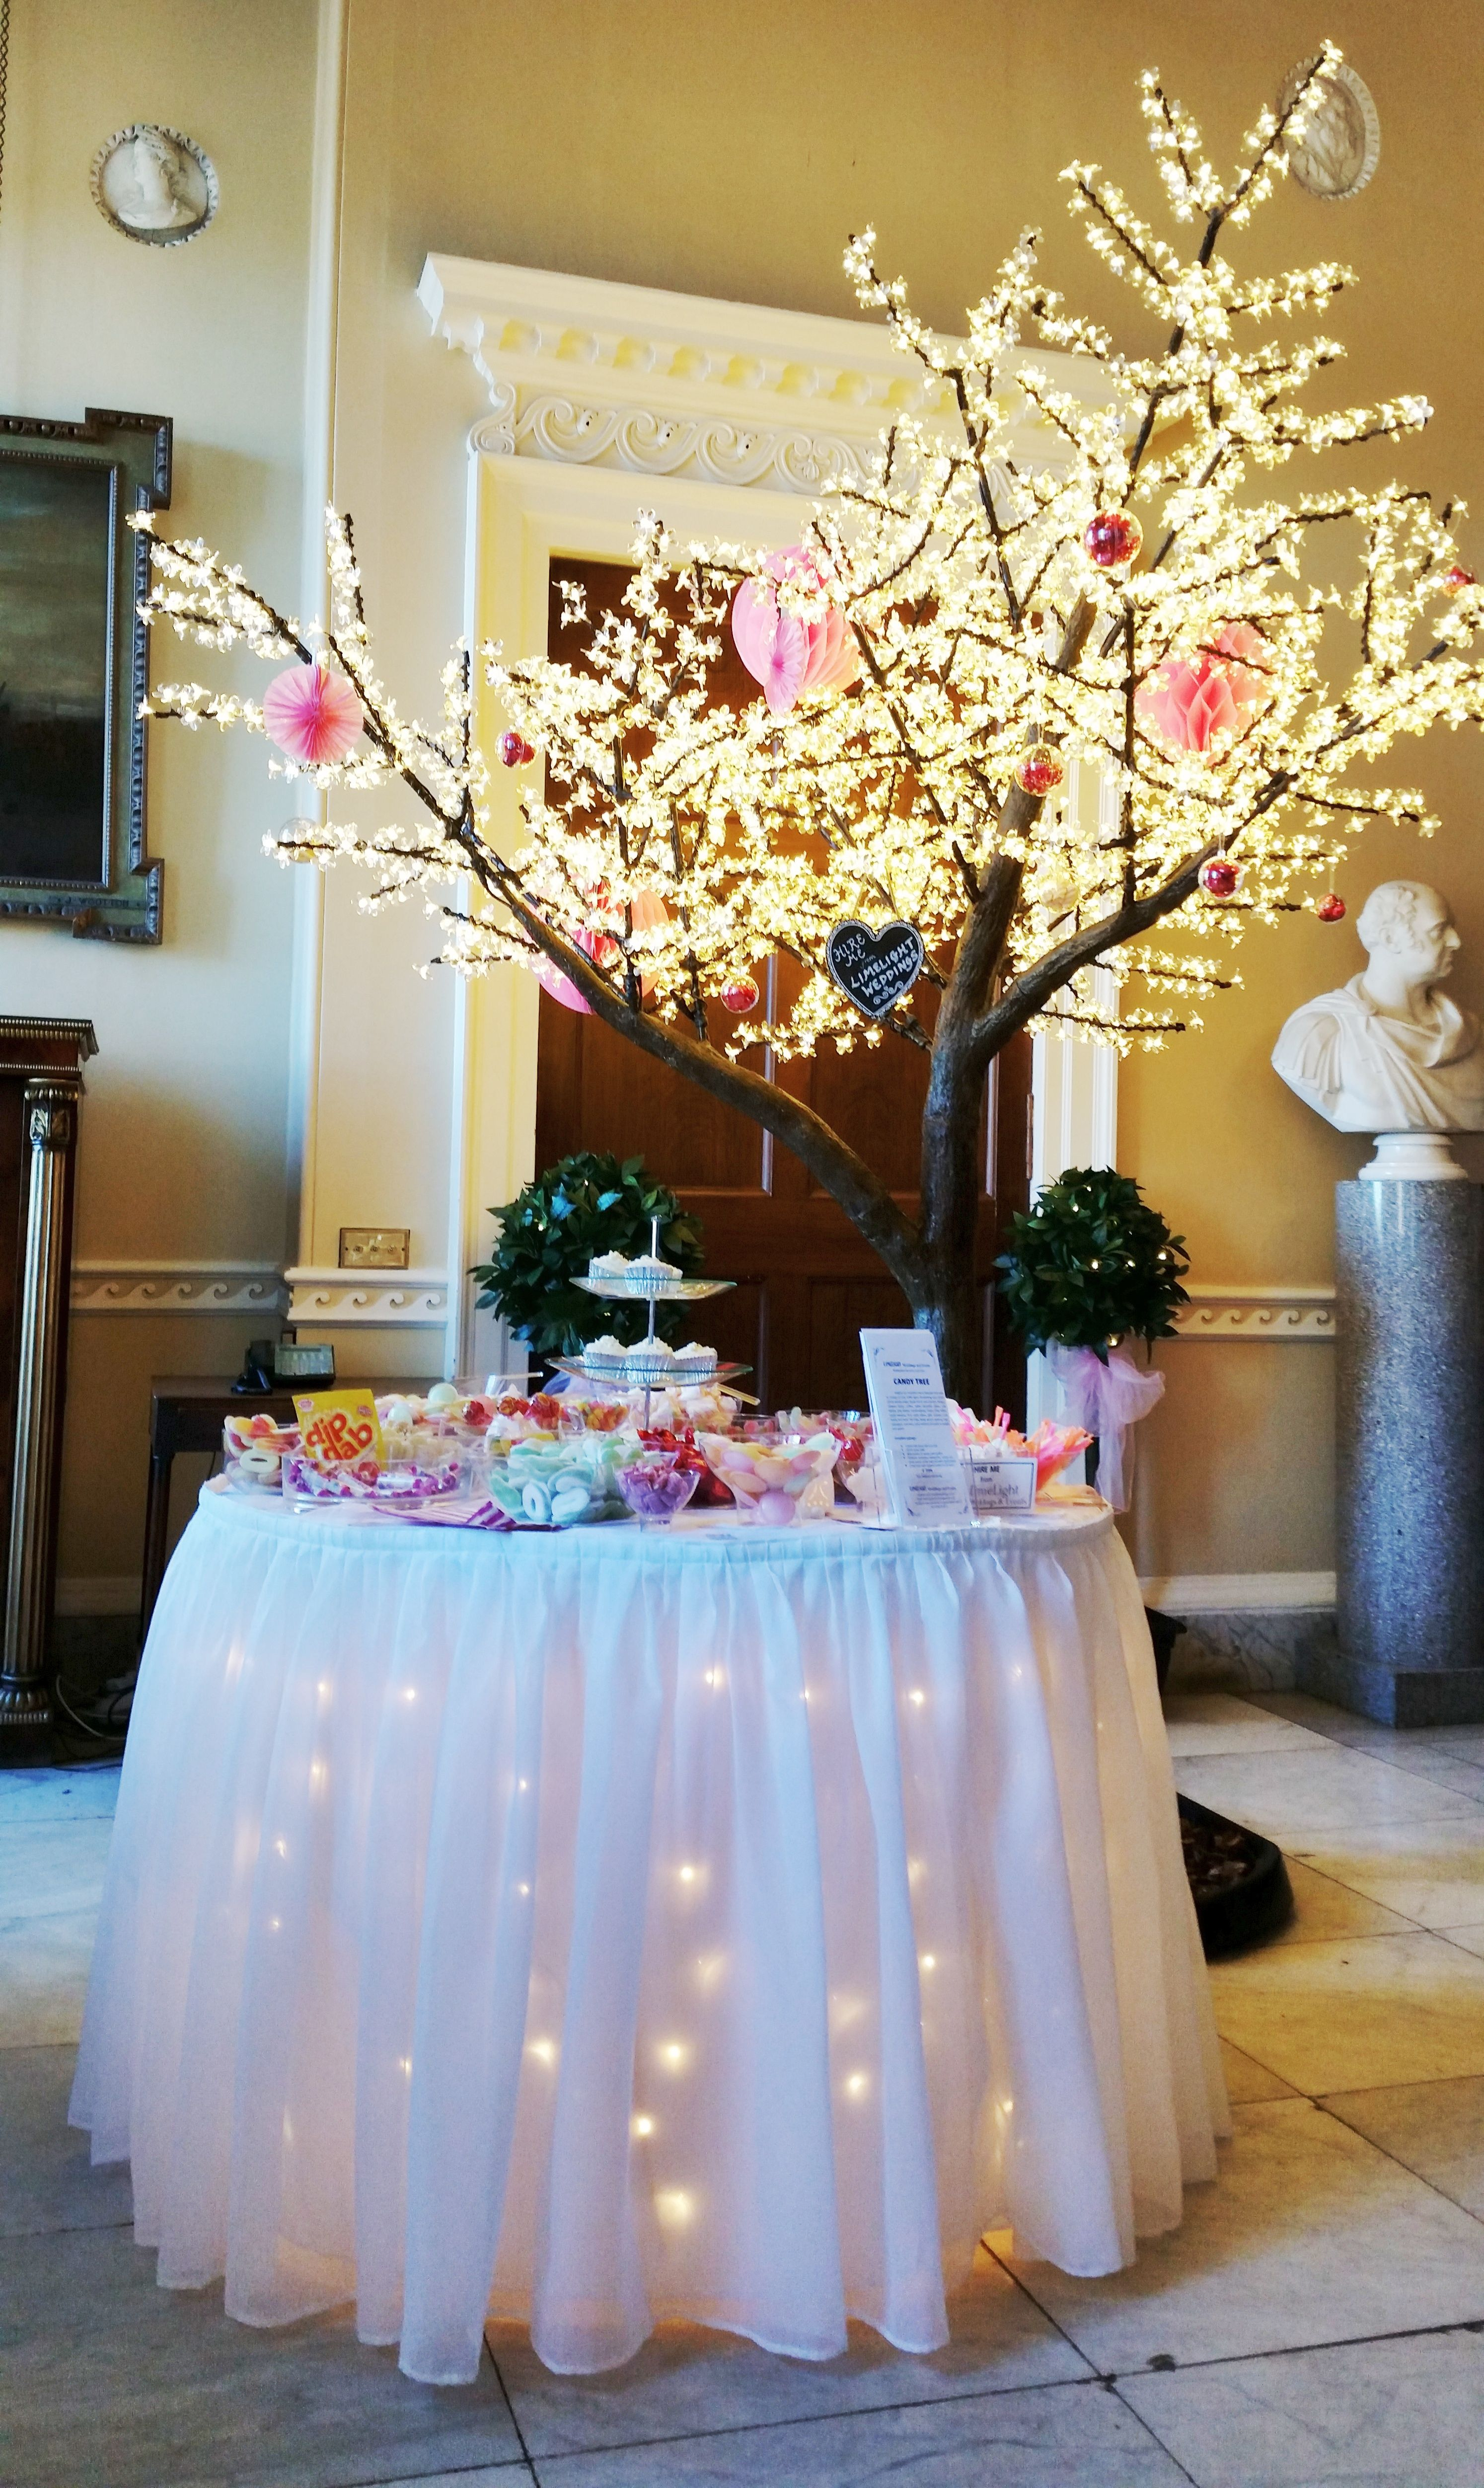 Candy table under the cherry blossom tree at hopetoun house nr candy table under the cherry blossom tree at hopetoun house nr edinburgh in october 2016 junglespirit Choice Image